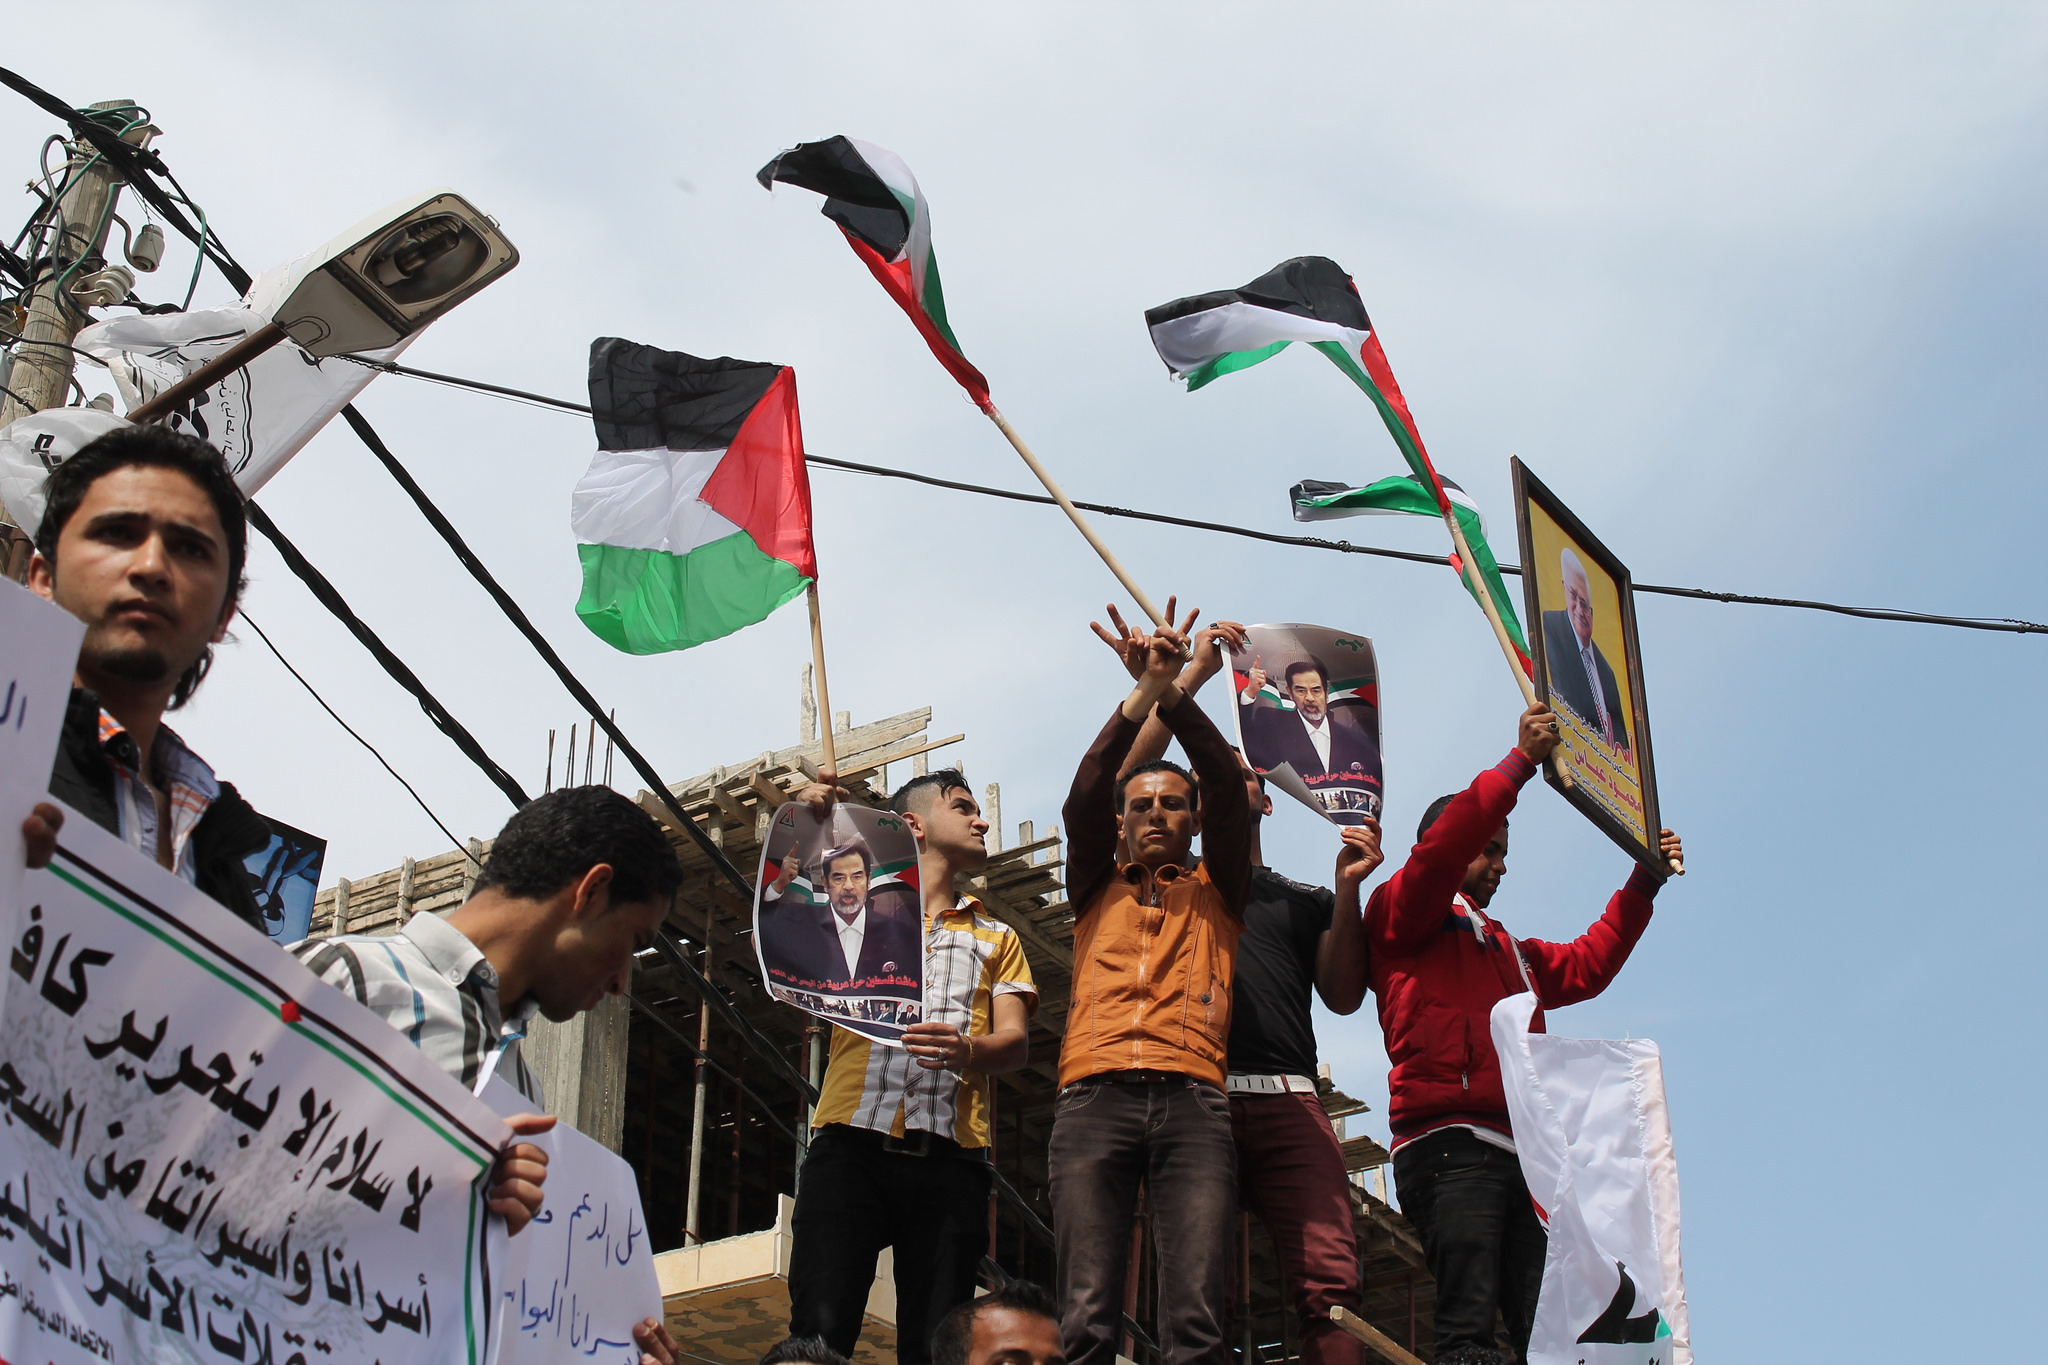 Palestinian Arab Front holds Gaza rally after weekly sit-in for Palestinian prisoners © Joe Catron